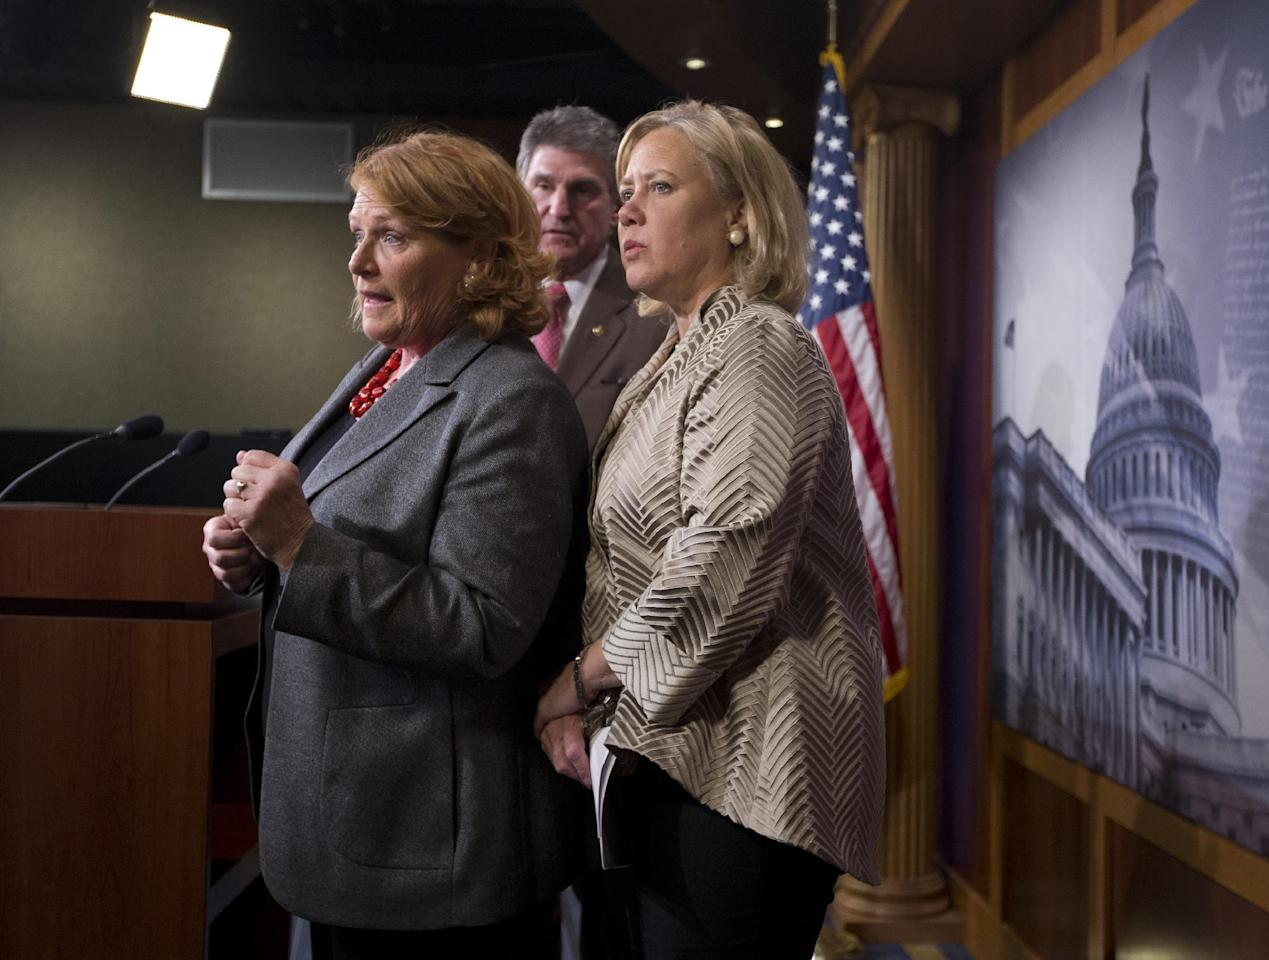 Sen. Mary Landrieu, D-La., chair of the Senate Energy and Natural Resources Committee, and the Keystone XL oil pipeline bill sponsor, right, Sen. Joe Manchin, D-W. Va., center, and Sen. Heidi Heitkamp, D-N.D., left, participate in a news conference on Capitol Hill in Washington, Tuesday, Nov. 18, 2014. The U.S. Senate has rejected a proposal to fast-track the approval of the controversial Keystone XL pipeline. (AP Photo/Carolyn Kaster)